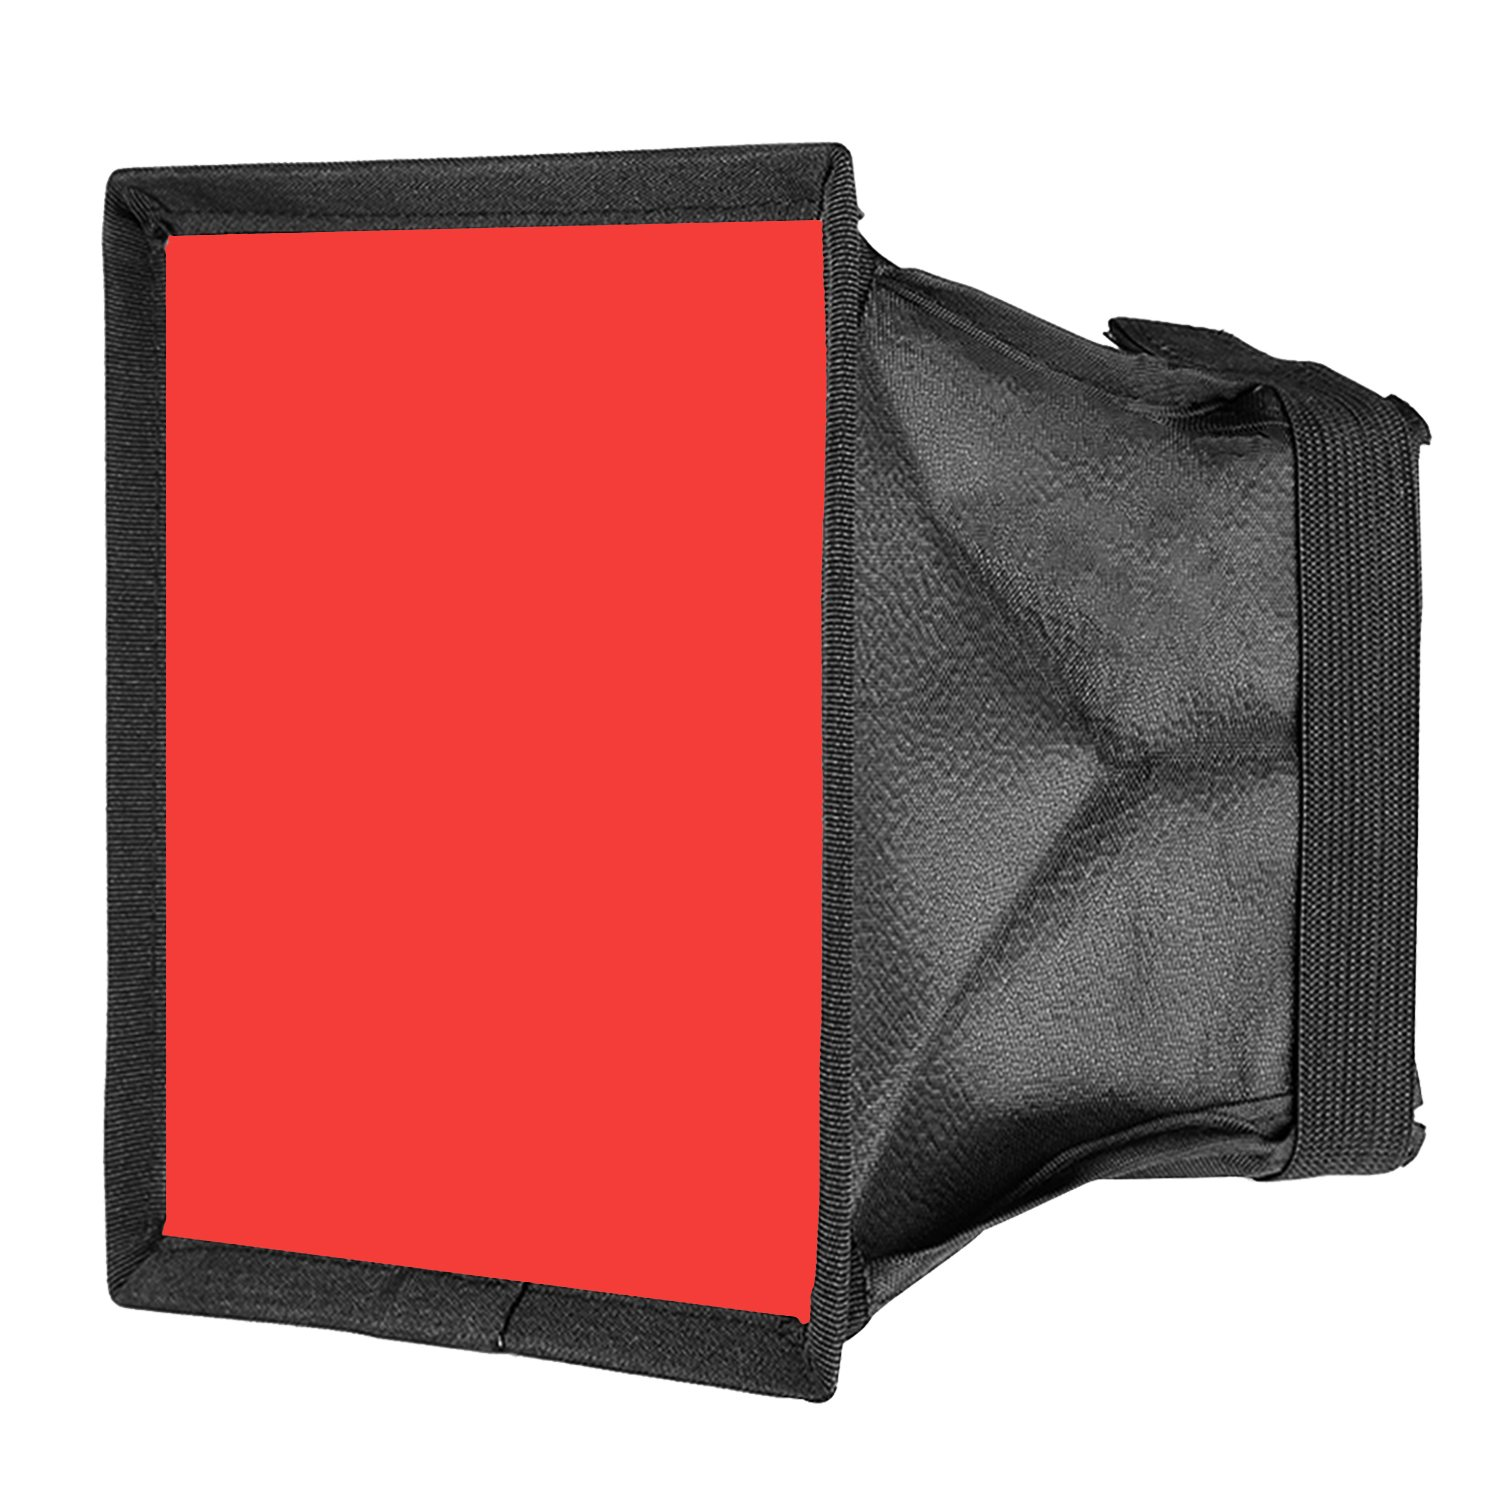 Neewer 5.9x6.7 inches/15x17 Centimeters Camera Collapsible Diffuser Mini Softbox for CN-160, CN-126 and CN-216 LED Light (Red) 10093562